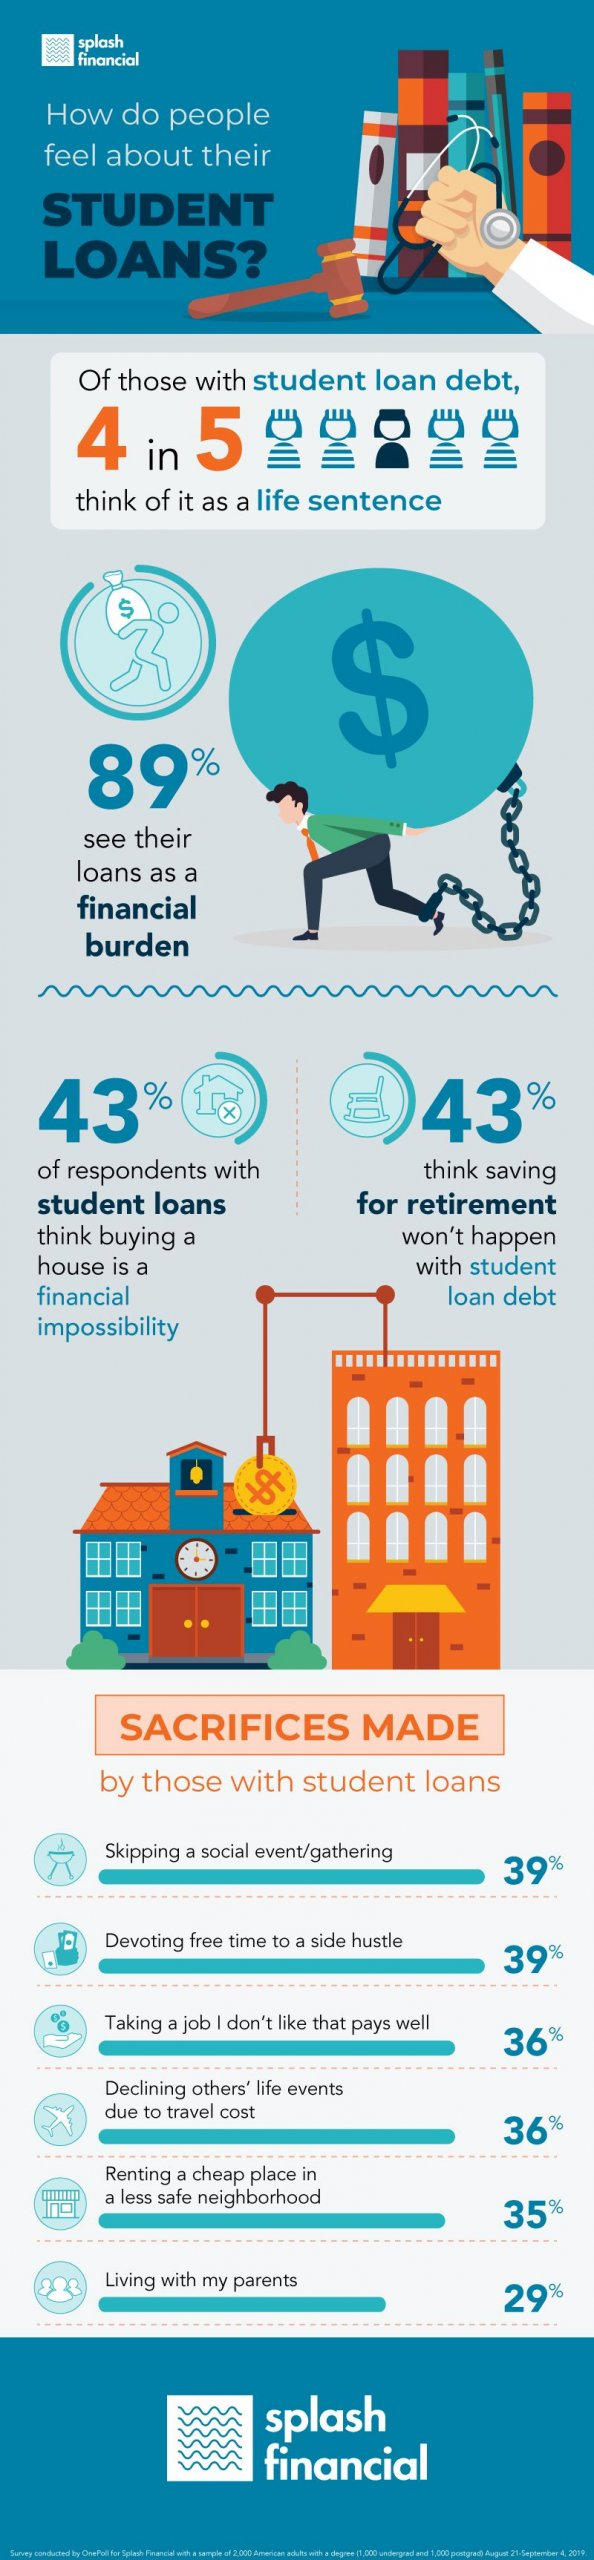 studentloaninfographic scaled